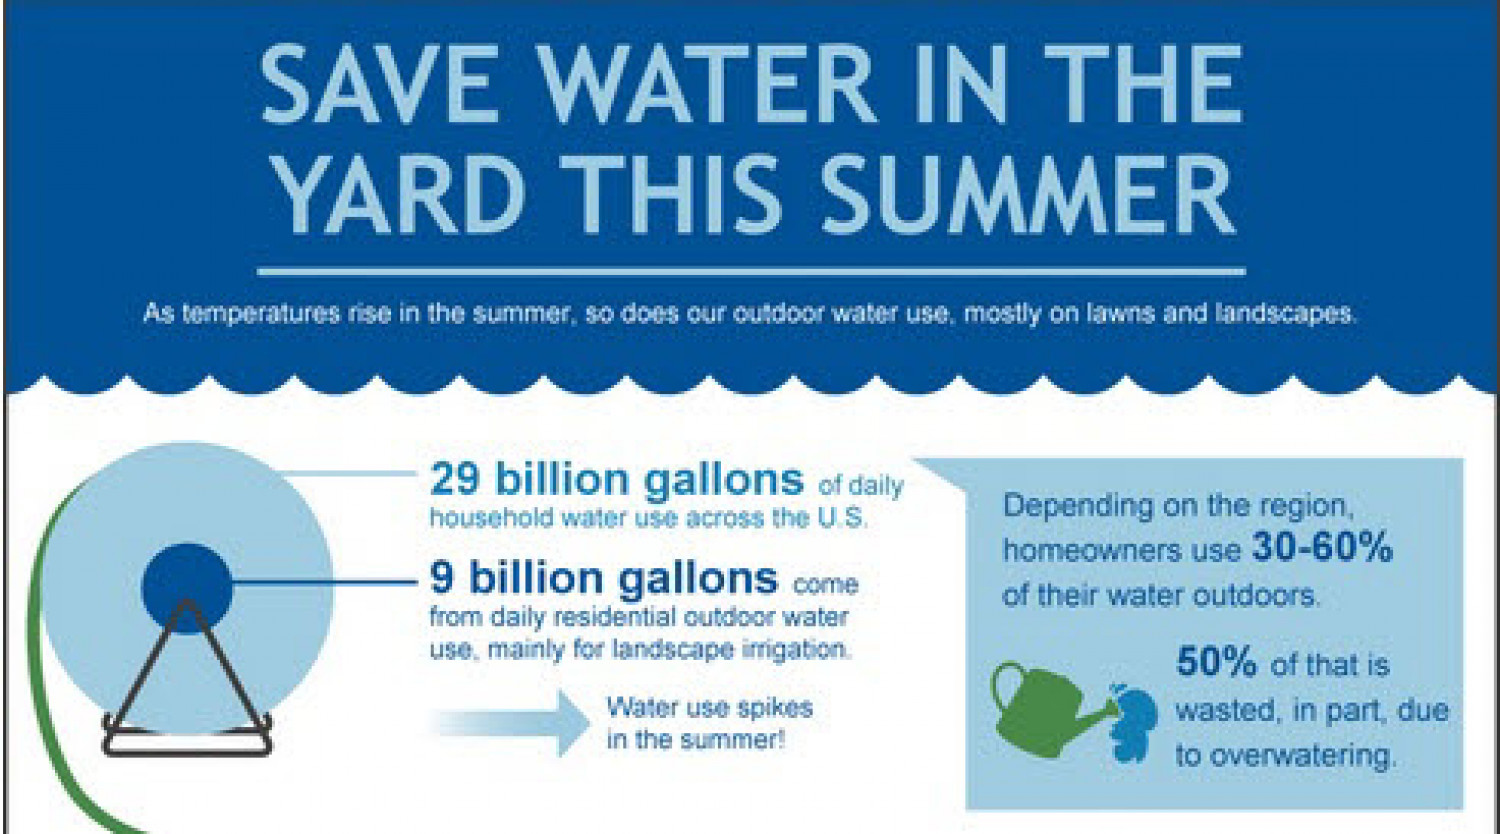 Save Water In The Yard This Summer And Every Summer